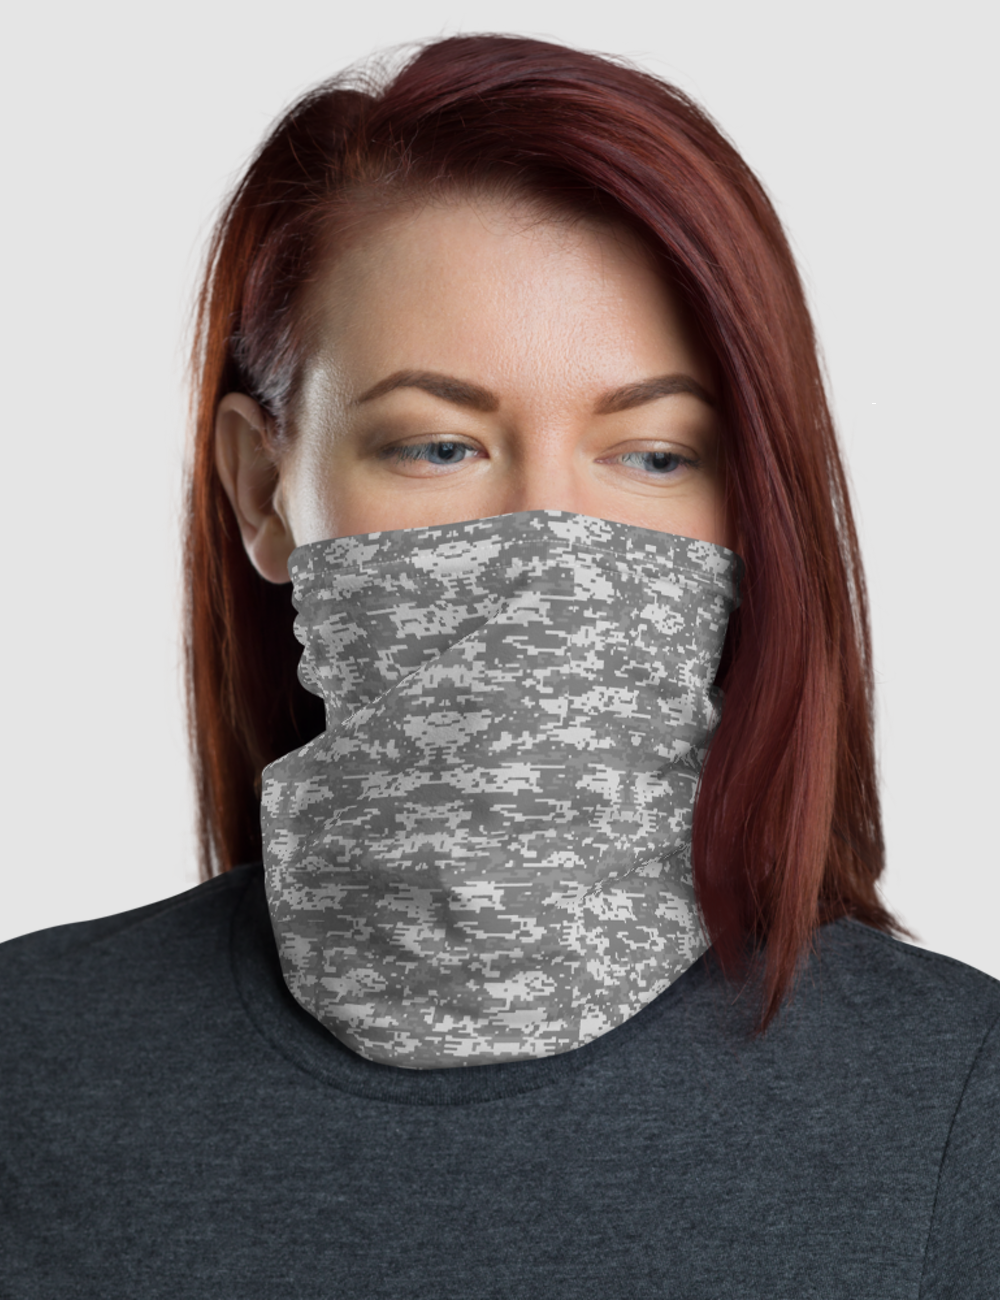 Digital Military Grey Camouflage Print | Neck Gaiter Face Mask